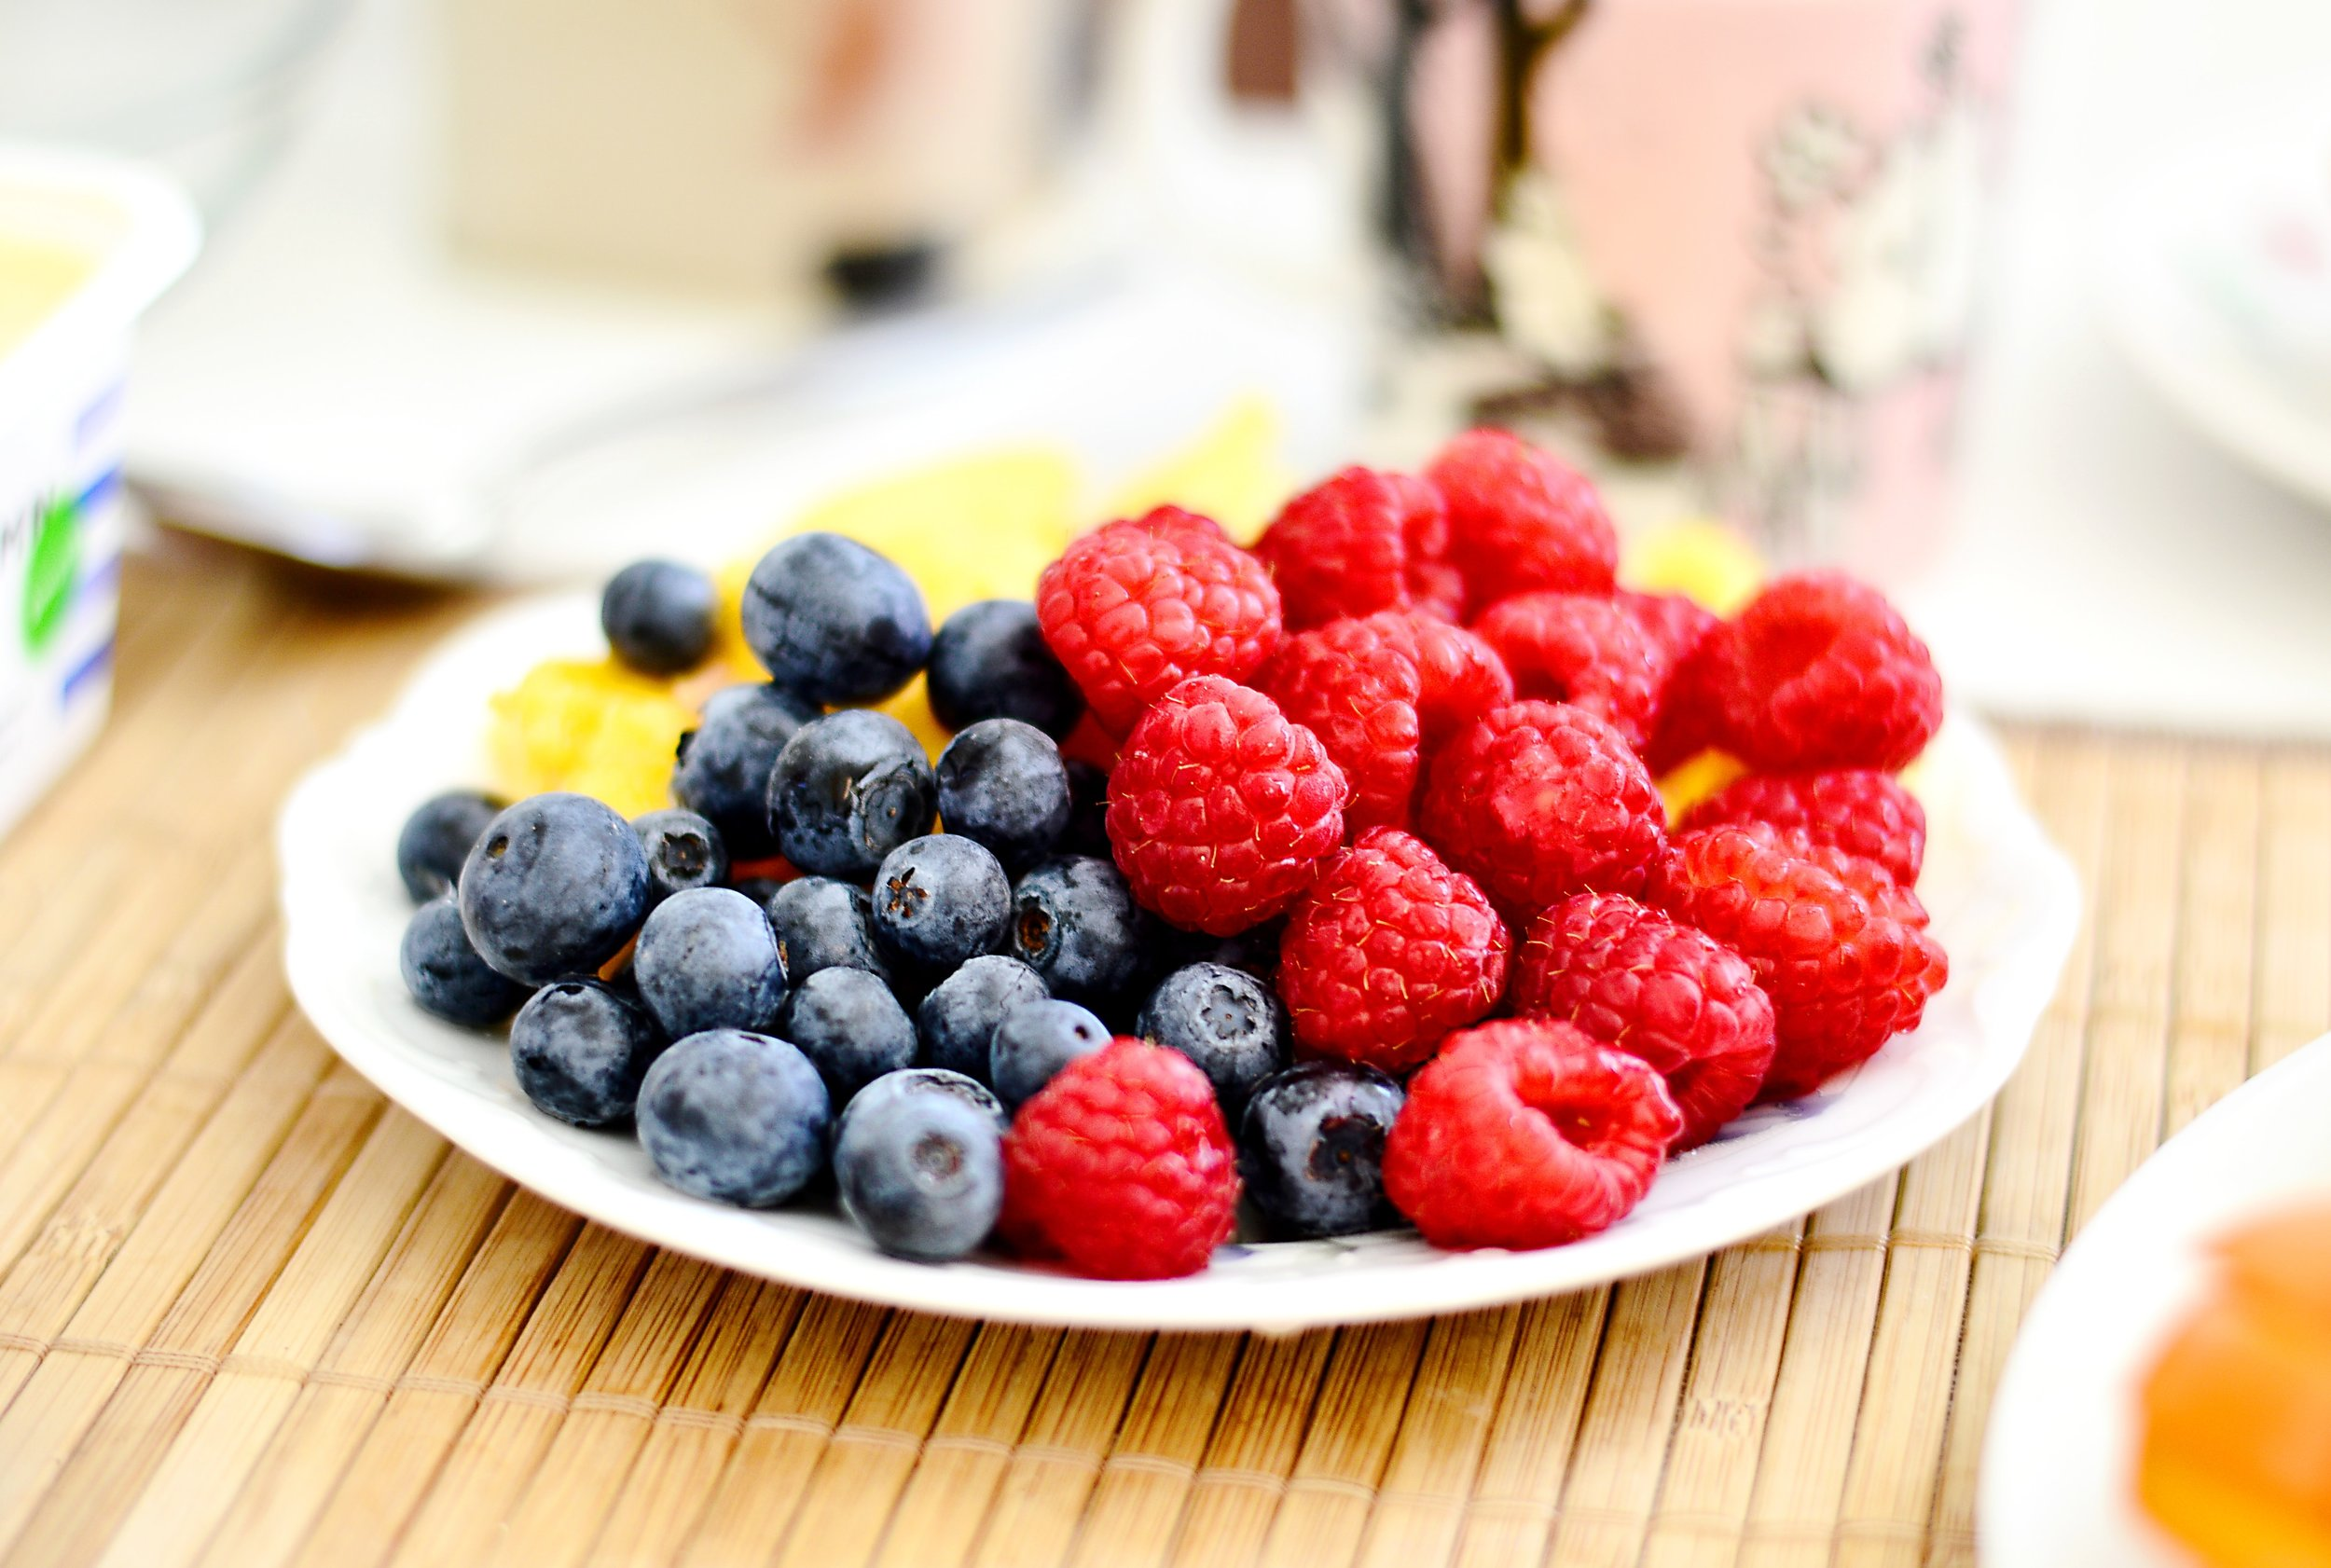 Eat berries with several different colors for the most nutrients!